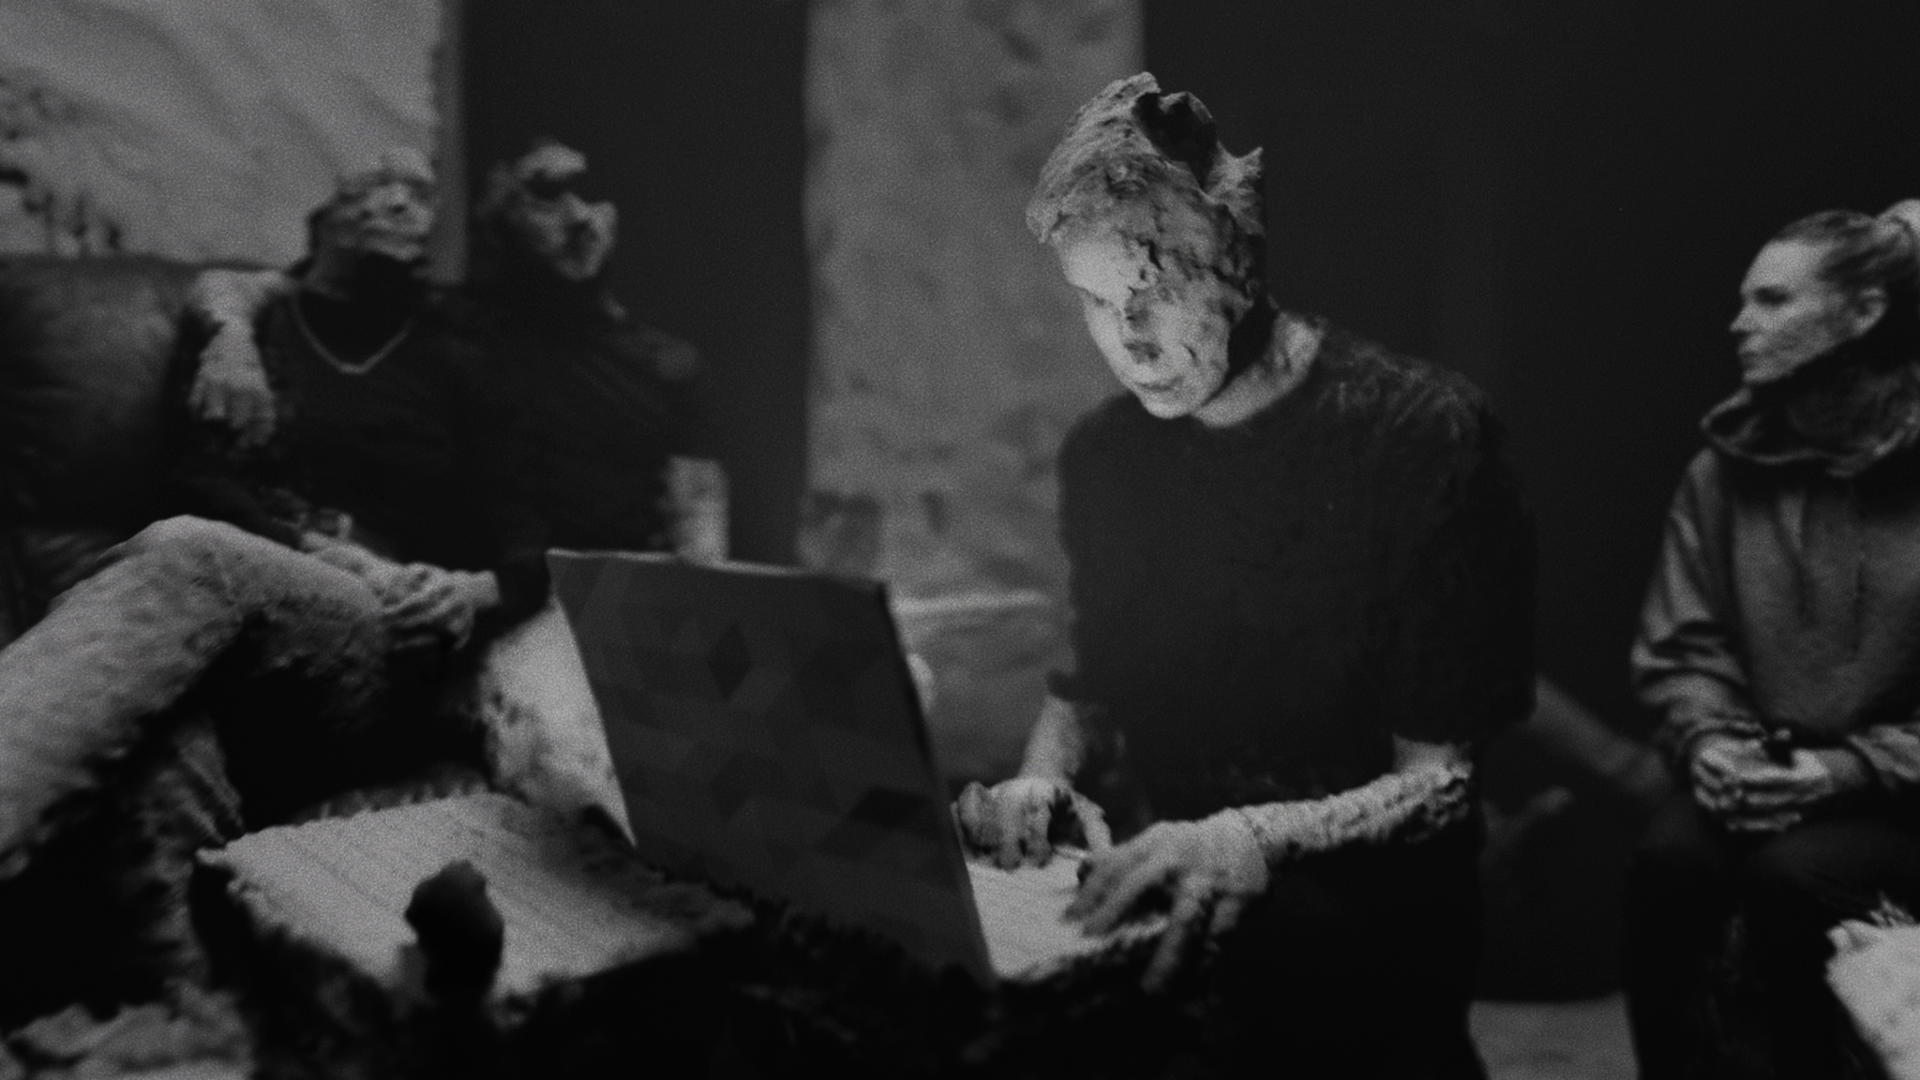 A LiDAR scanned image from the music video